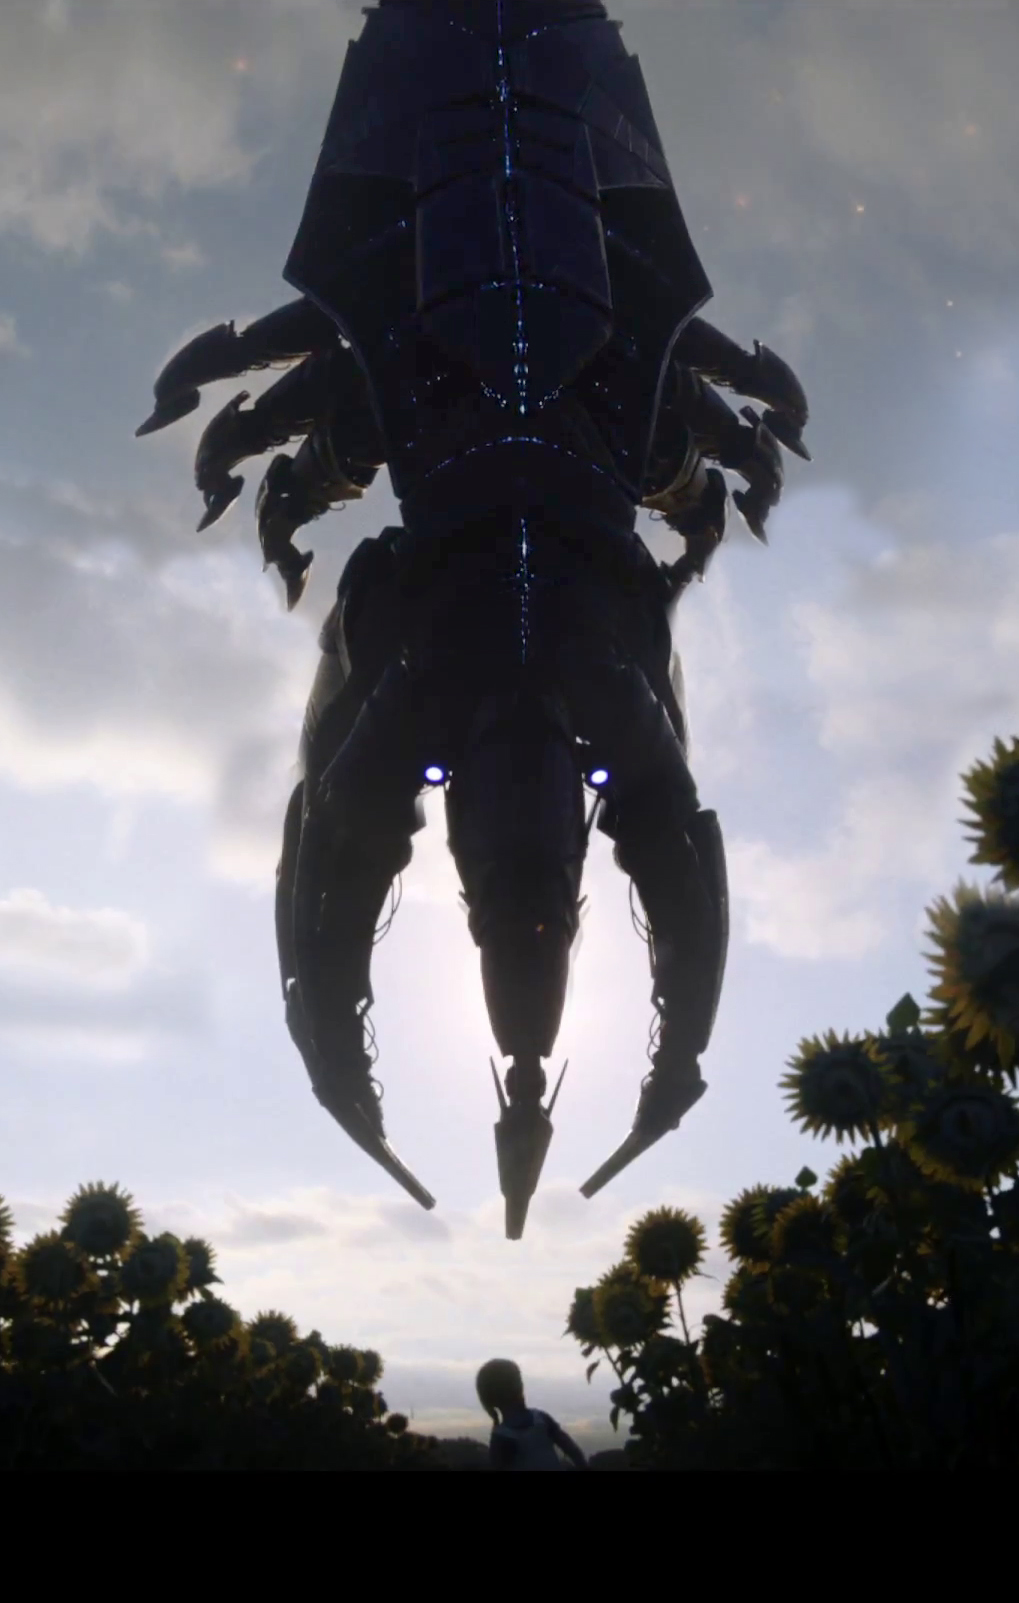 Image fab mass effect pic sex tube